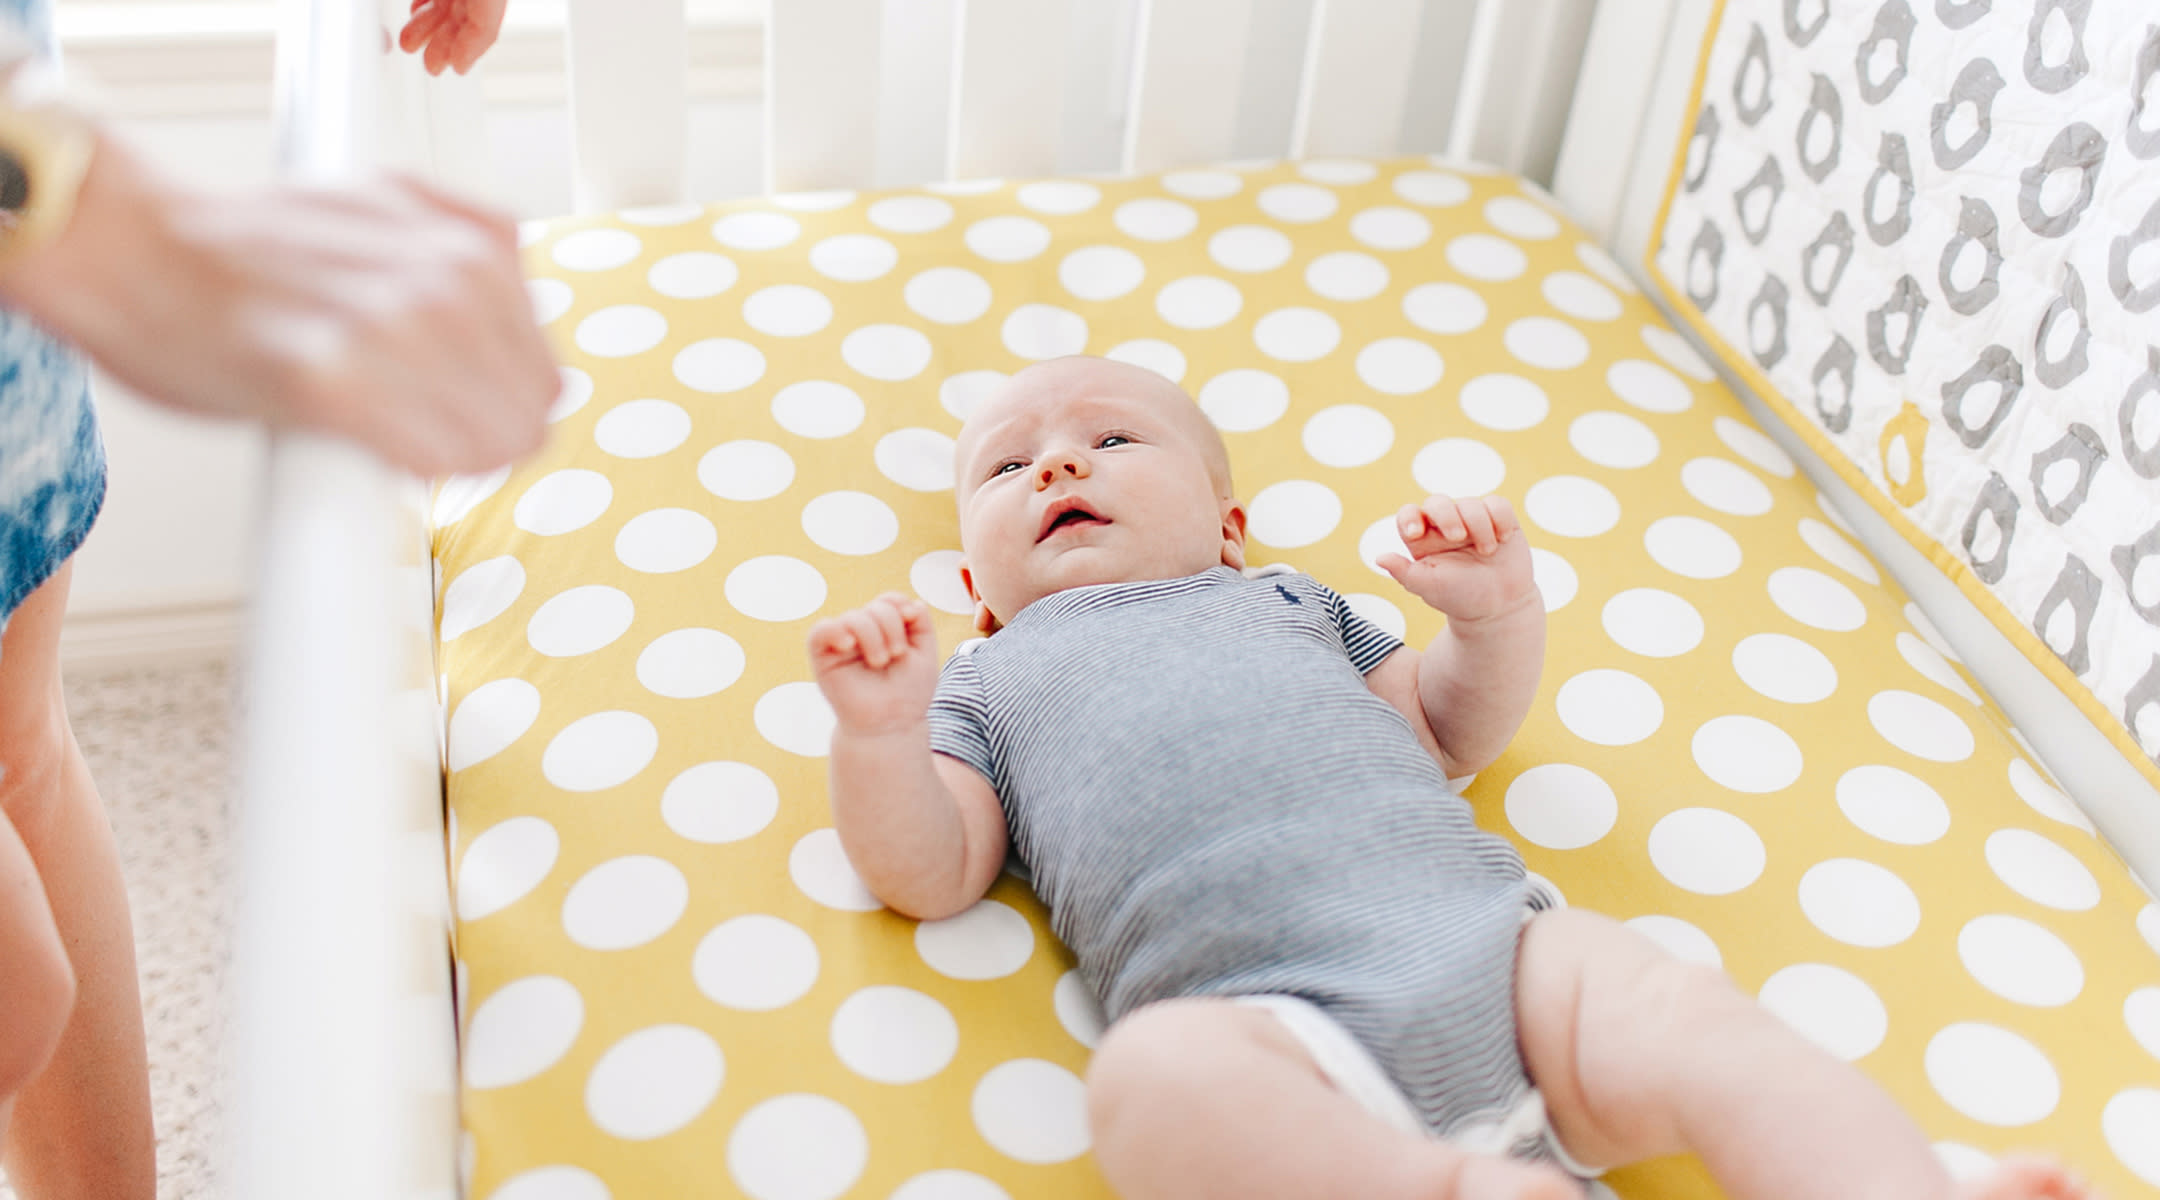 How To Decrease Sids Risk